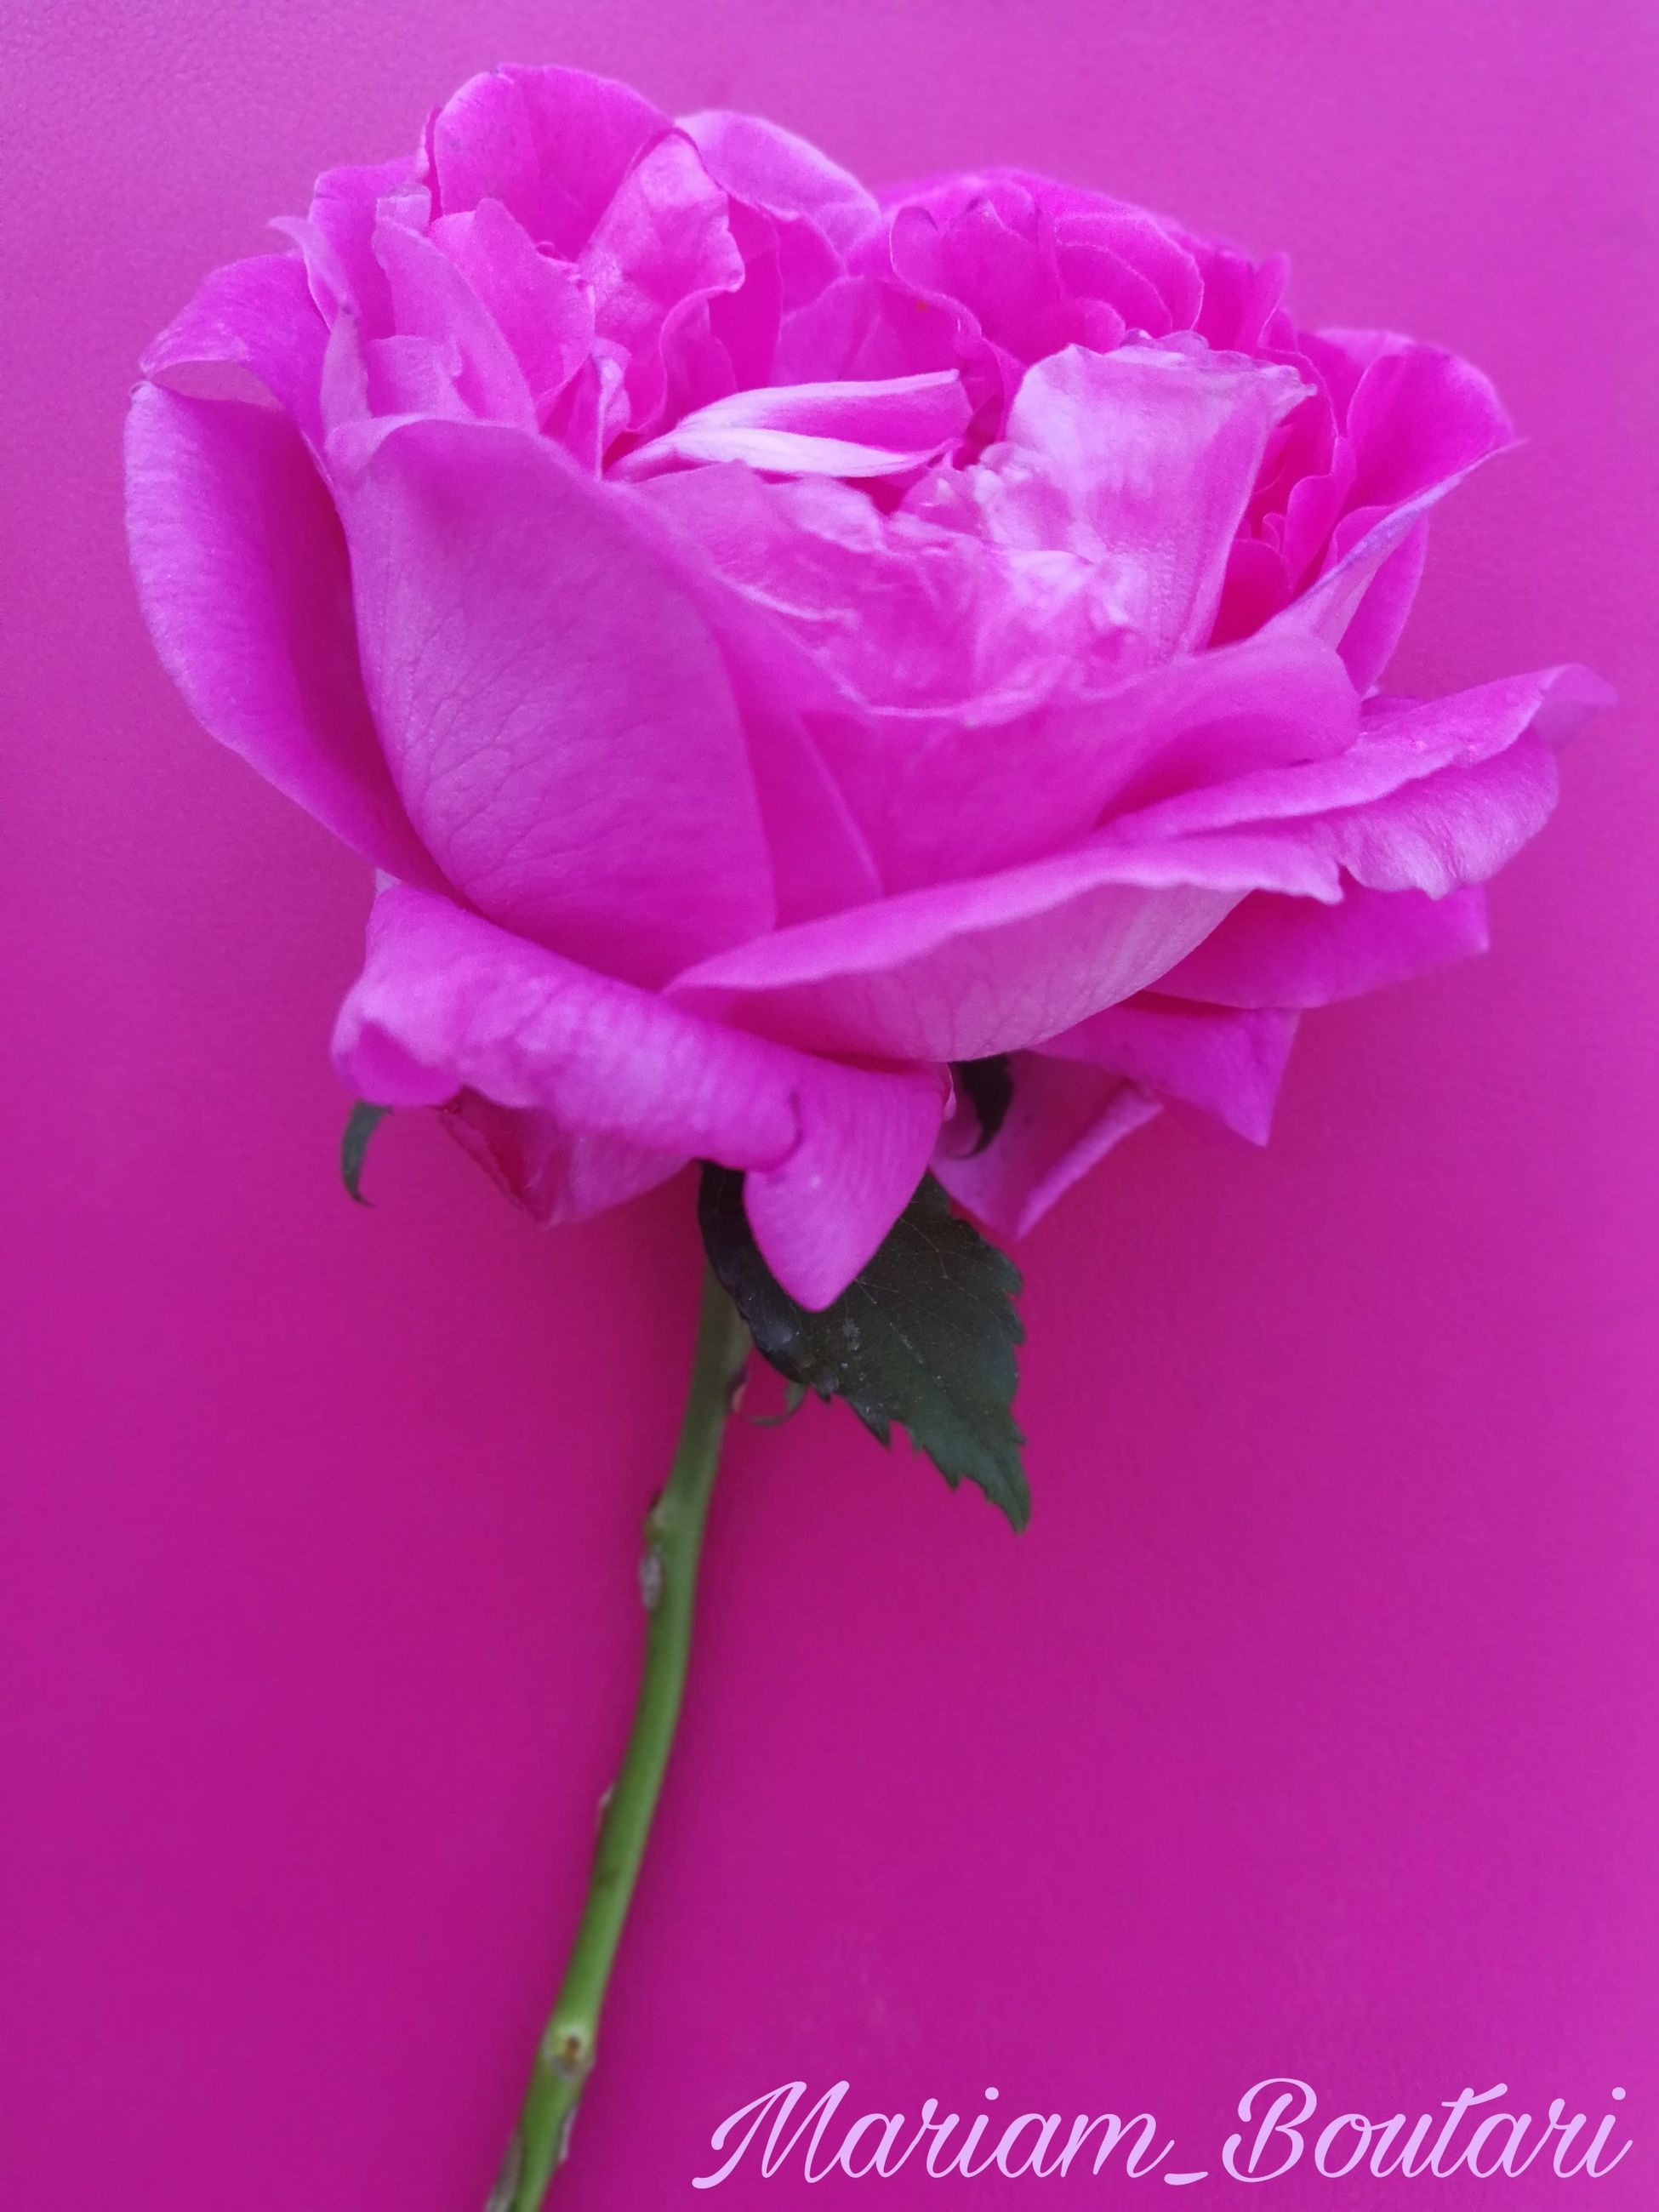 pink color, flower, flowering plant, plant, beauty in nature, petal, freshness, close-up, fragility, vulnerability, inflorescence, no people, flower head, nature, indoors, rose, growth, studio shot, rose - flower, colored background, purple